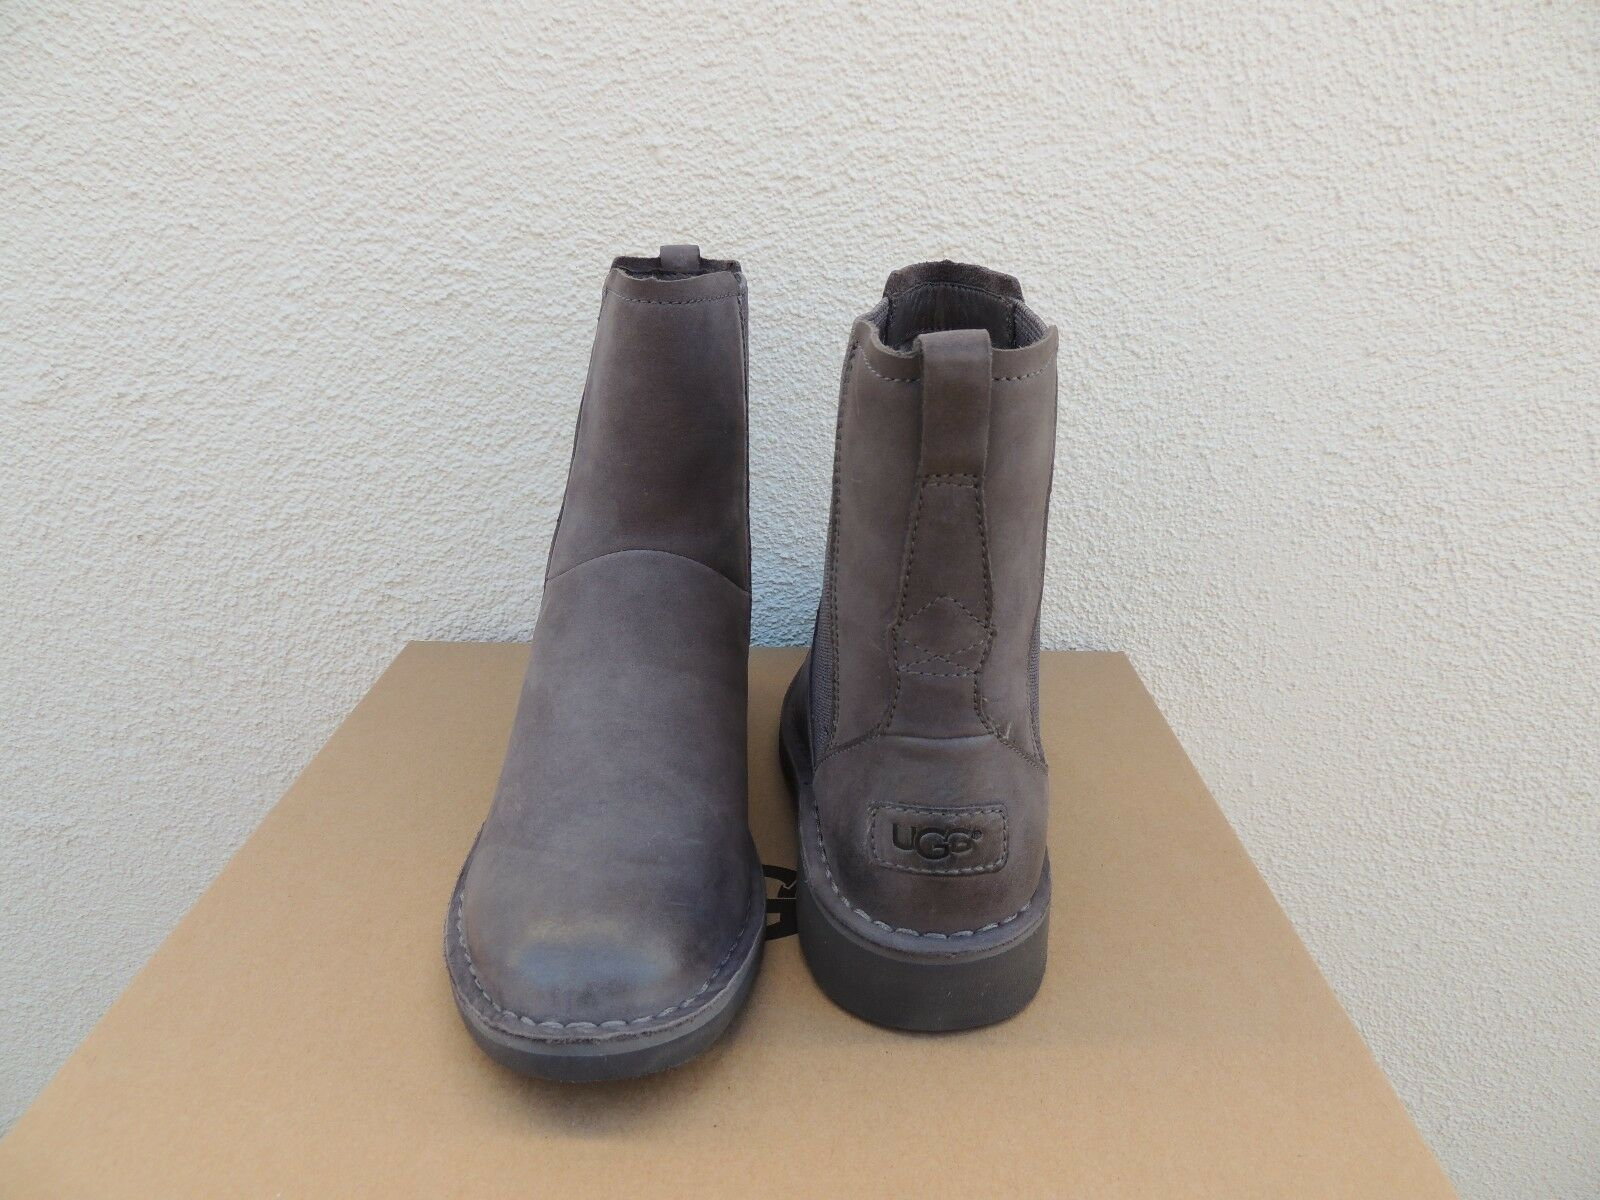 UGG Larra Charcoal Chelsea Leather Bottines/ Sheepwool Charcoal Chelsea Bottines US 9/ EUR 5cf826e - freemetalalbums.info